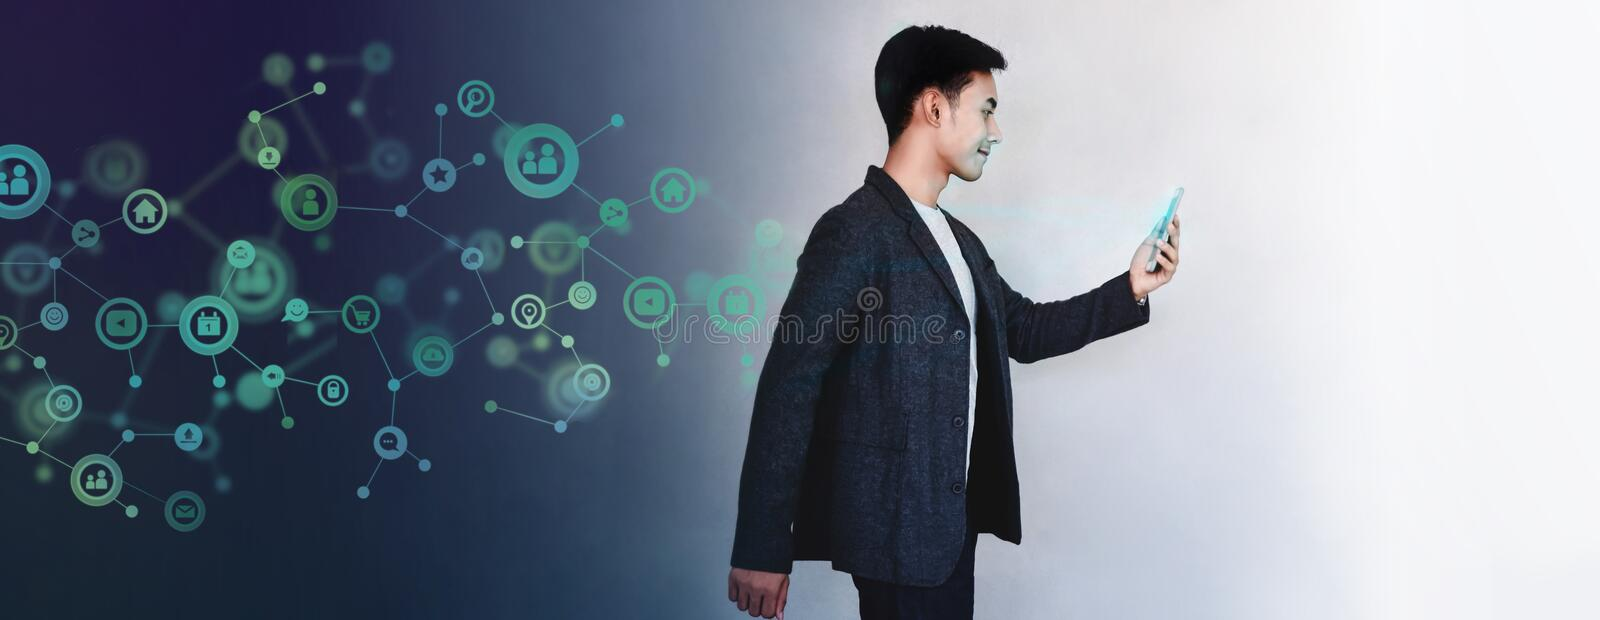 Technology to Communicate in Daily Life Concept. Young Motivation Businessman Using Smart Phone while Walk. Lifestyle of Modern stock photography